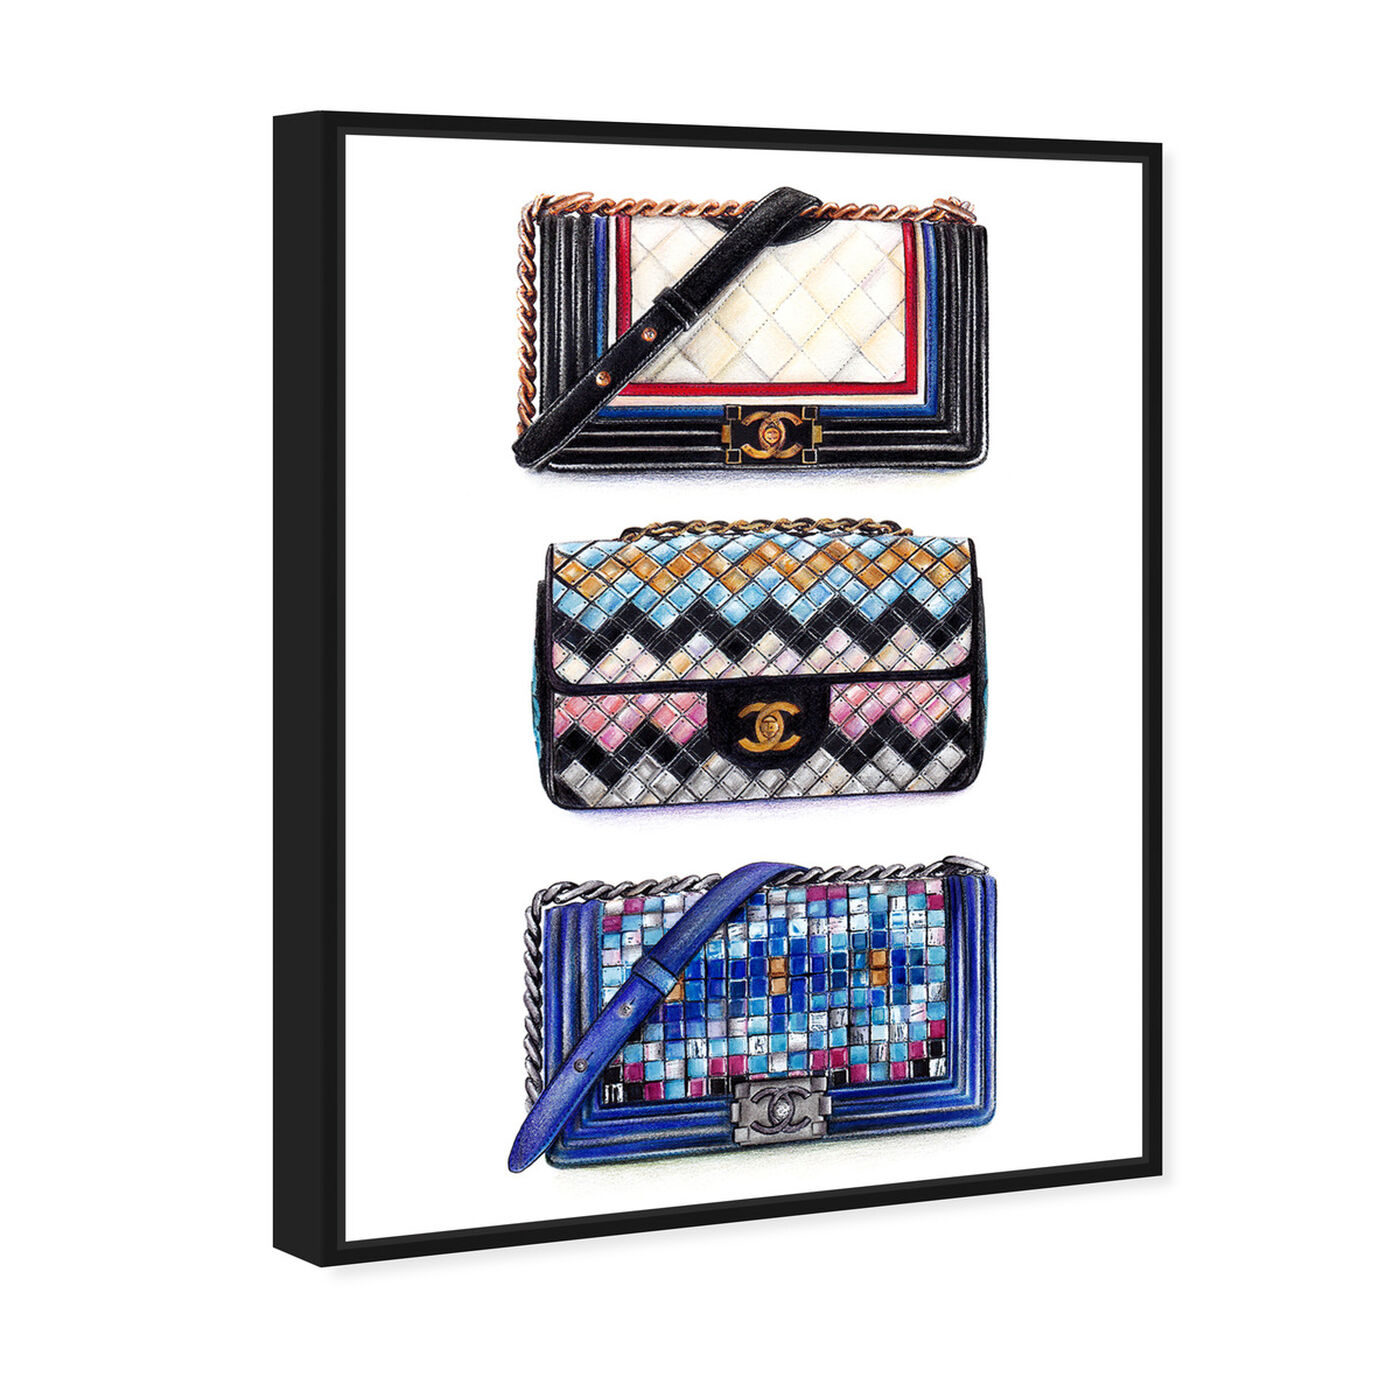 Angled view of Doll Memories - Le Resort Collection featuring fashion and glam and handbags art.